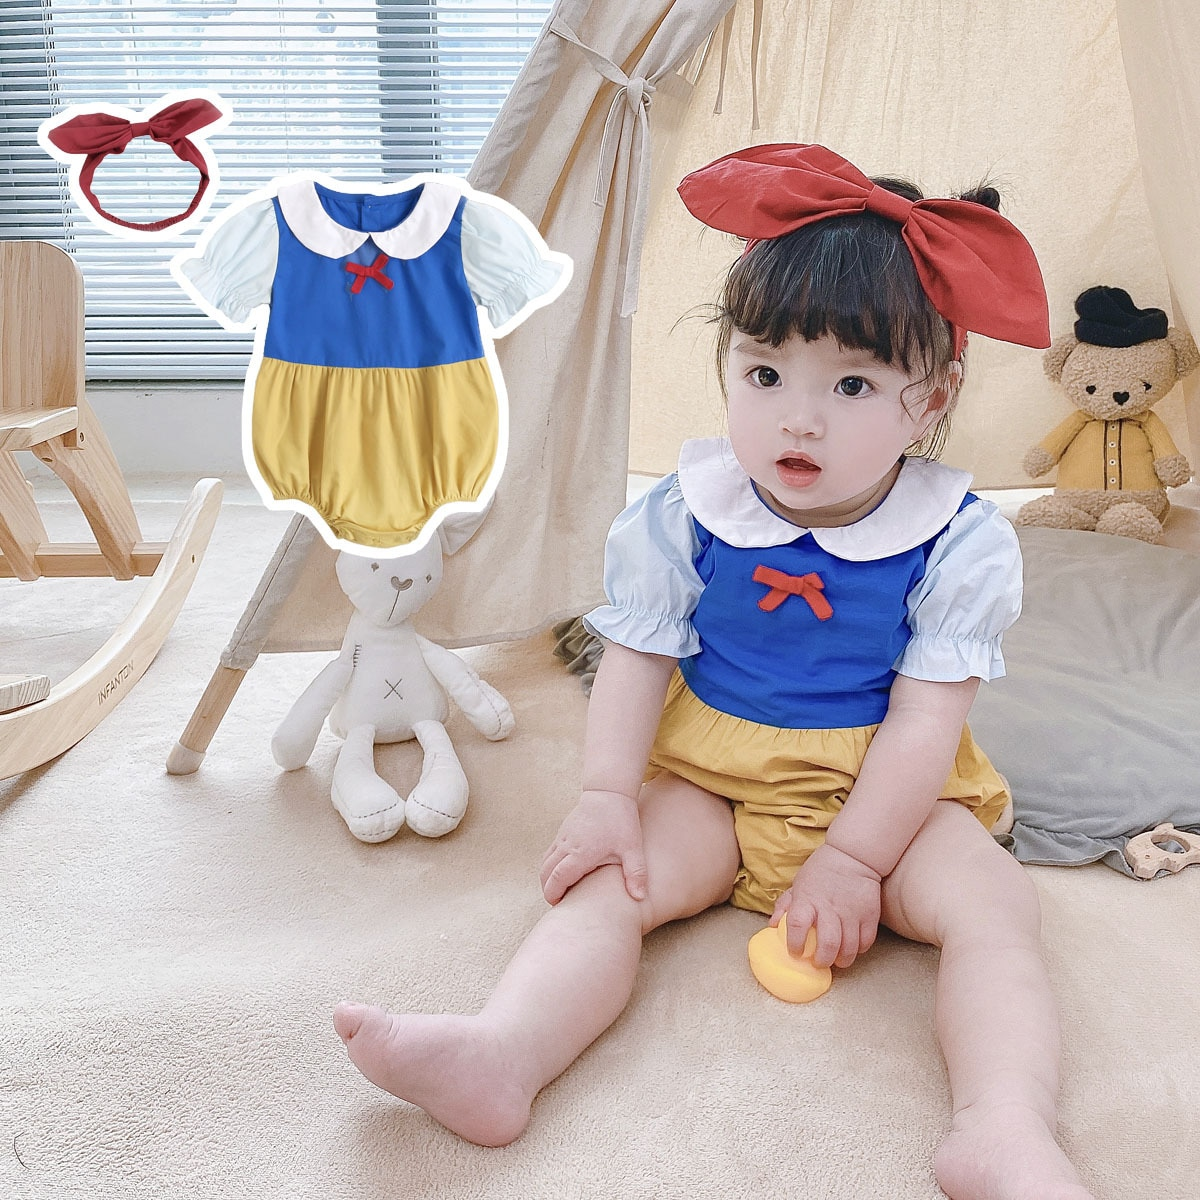 Paoke children's clothing 2021 summer baby clothing short creeping suit newborn short sleeve bag farting suit